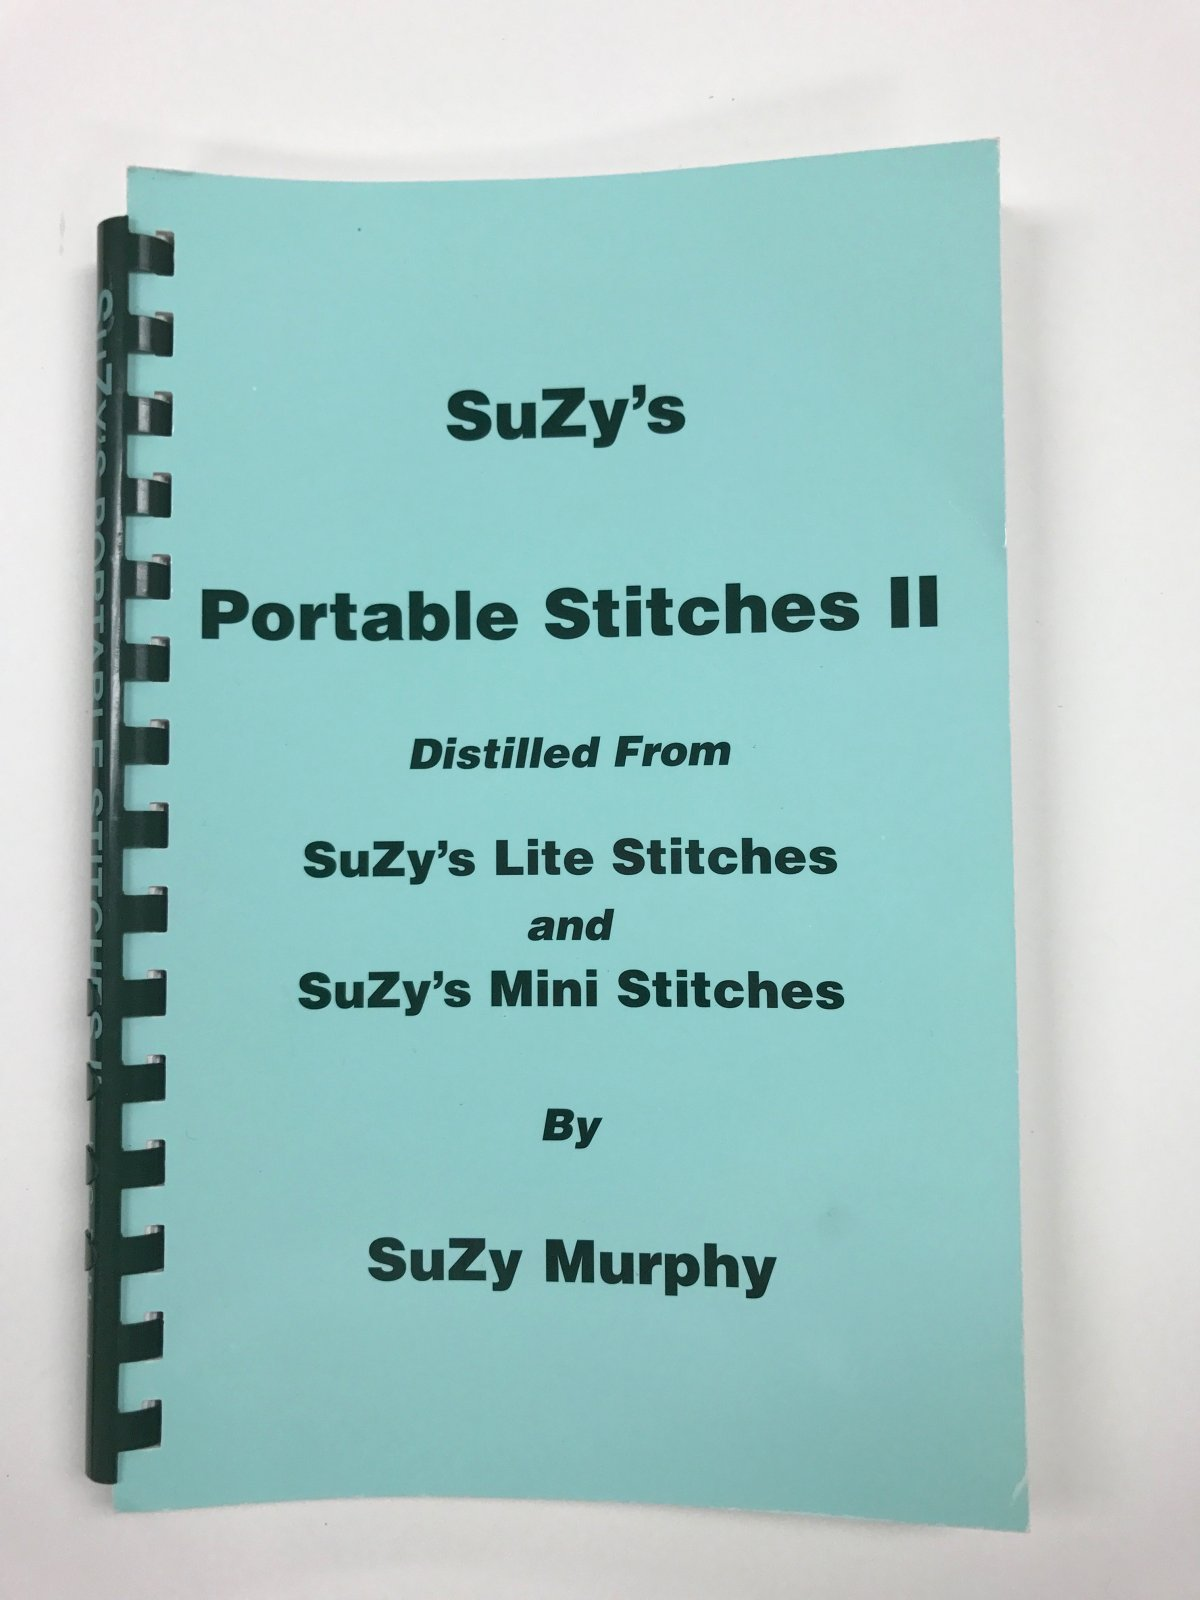 Suzy's Portable Stitches Vol II